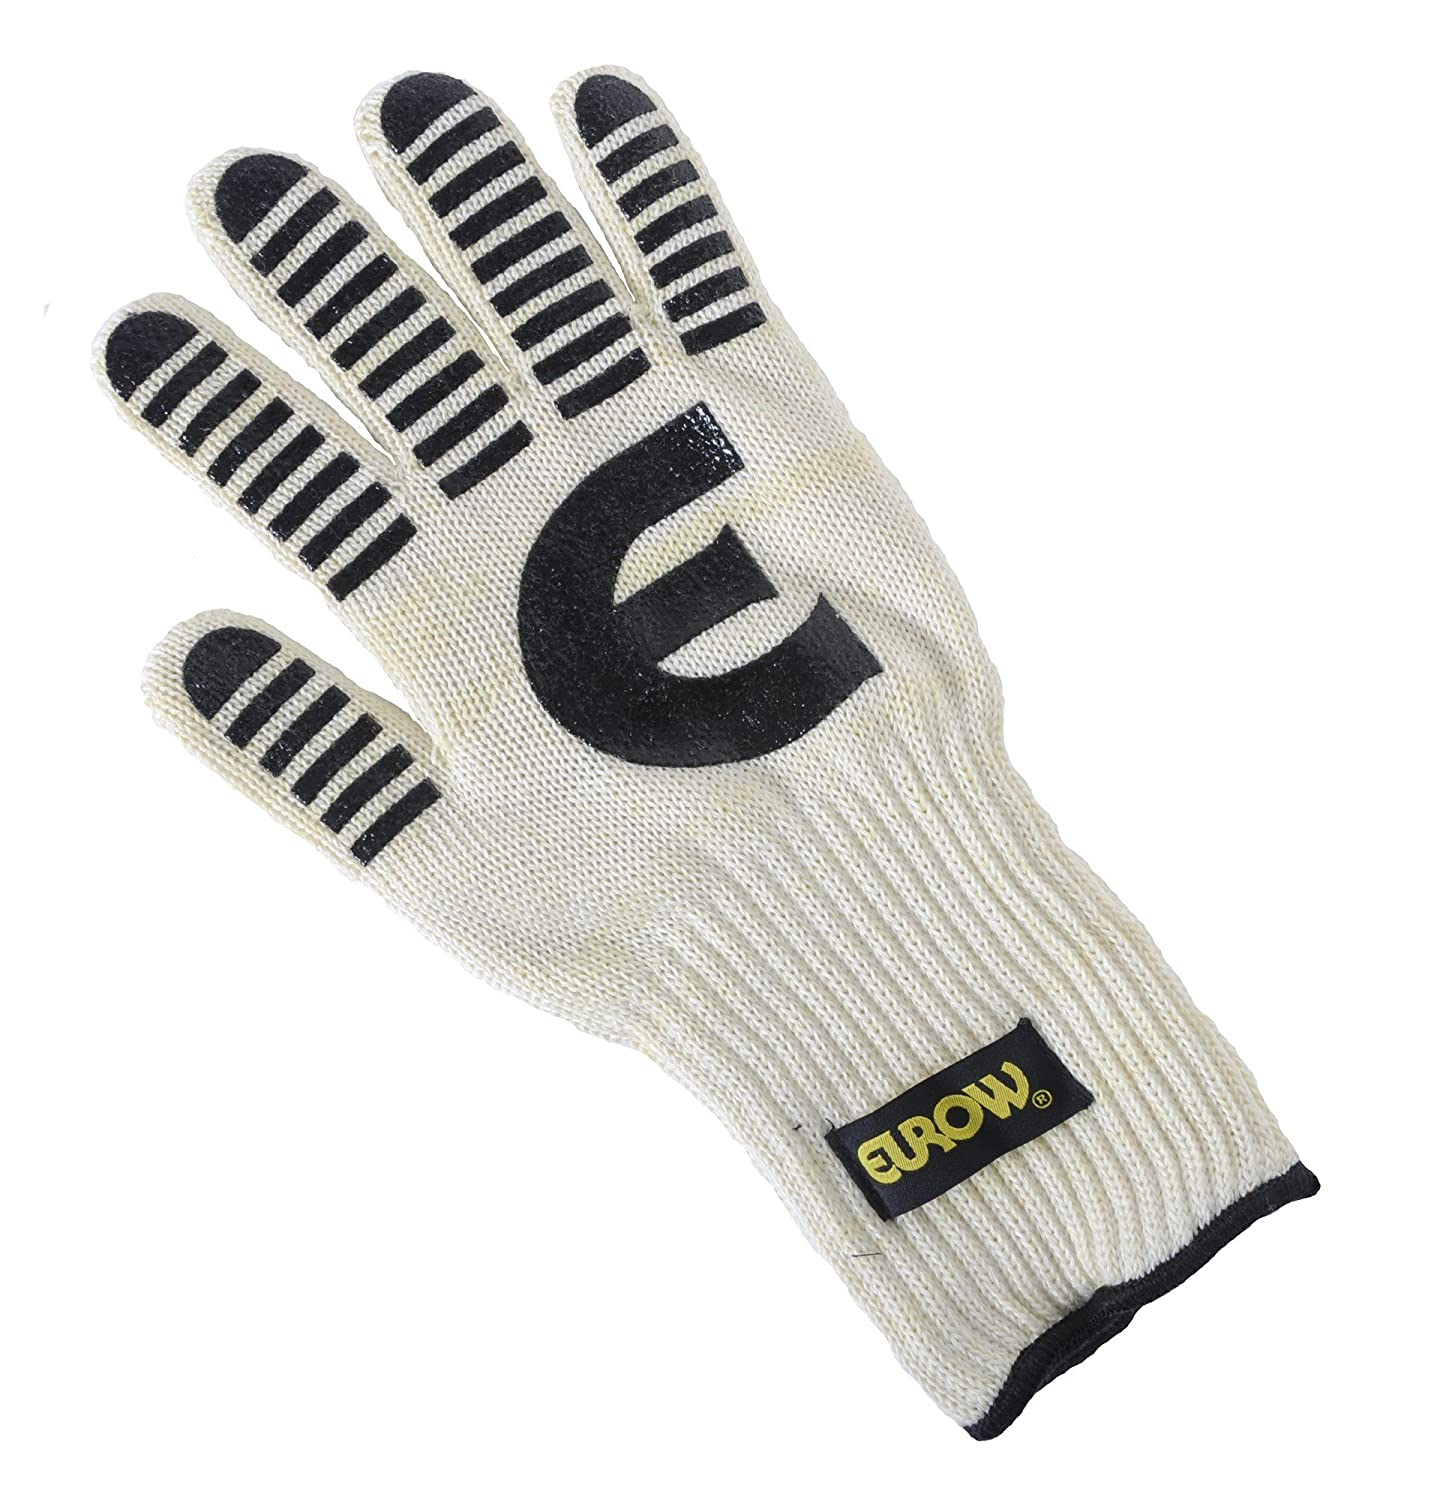 Nouvelle Legende Eurow Heat and Flame Resistant Silicone Oven Glove - 13 inches